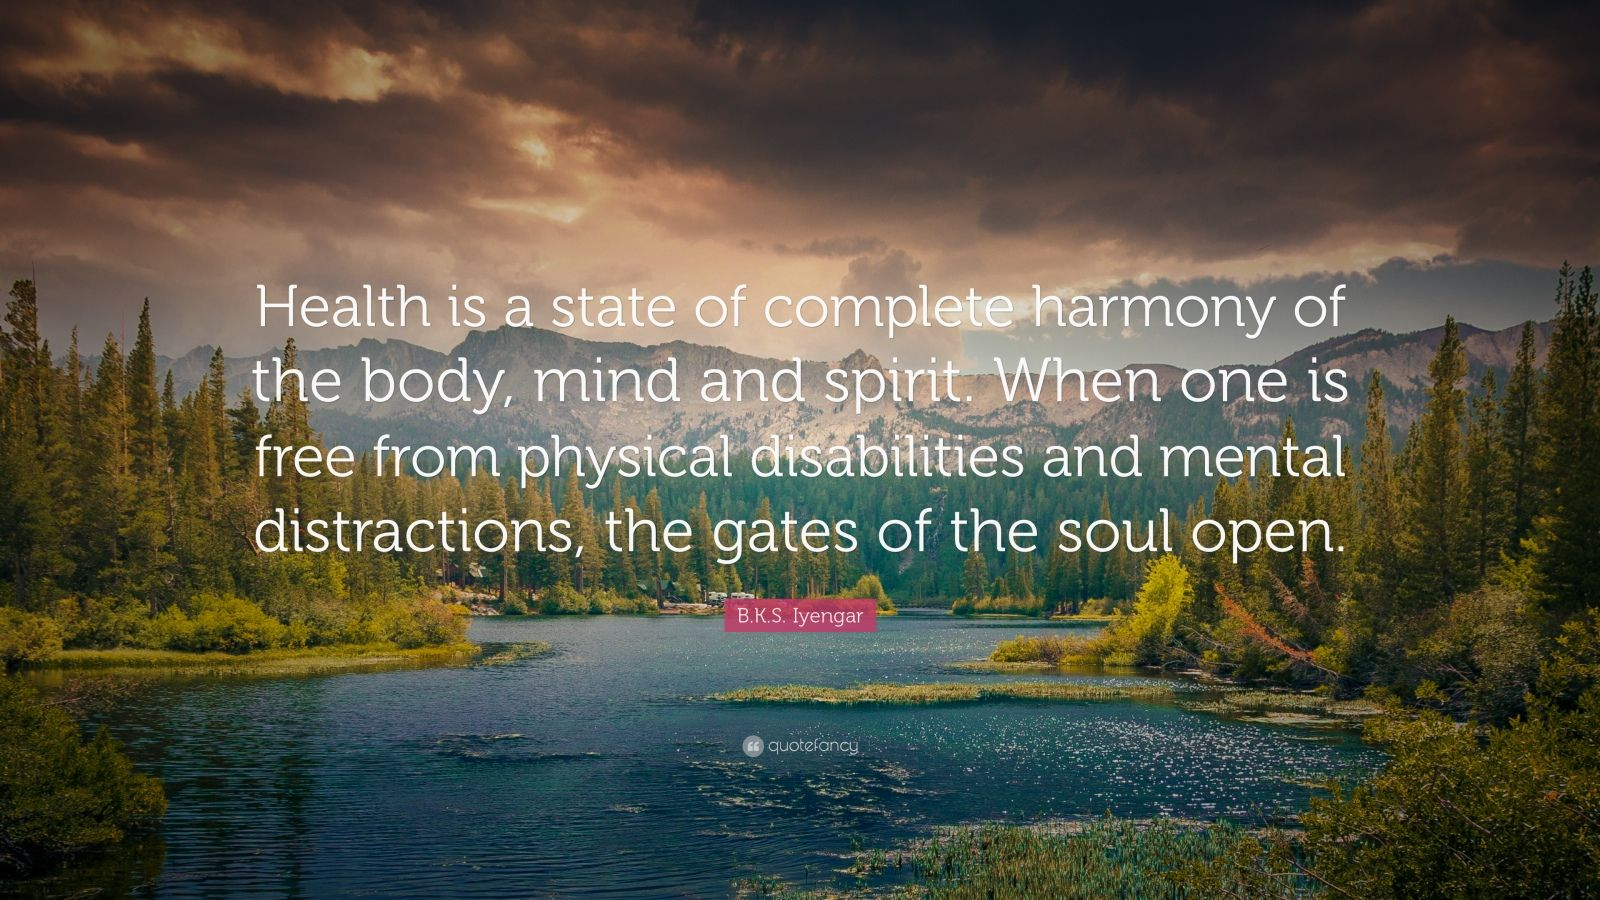 "B.K.S. Iyengar Quote: ""Health is a state of complete harmony of the body, mind and spirit. When one is free from physical disabilities and mental distractions, the gates of the soul open."""